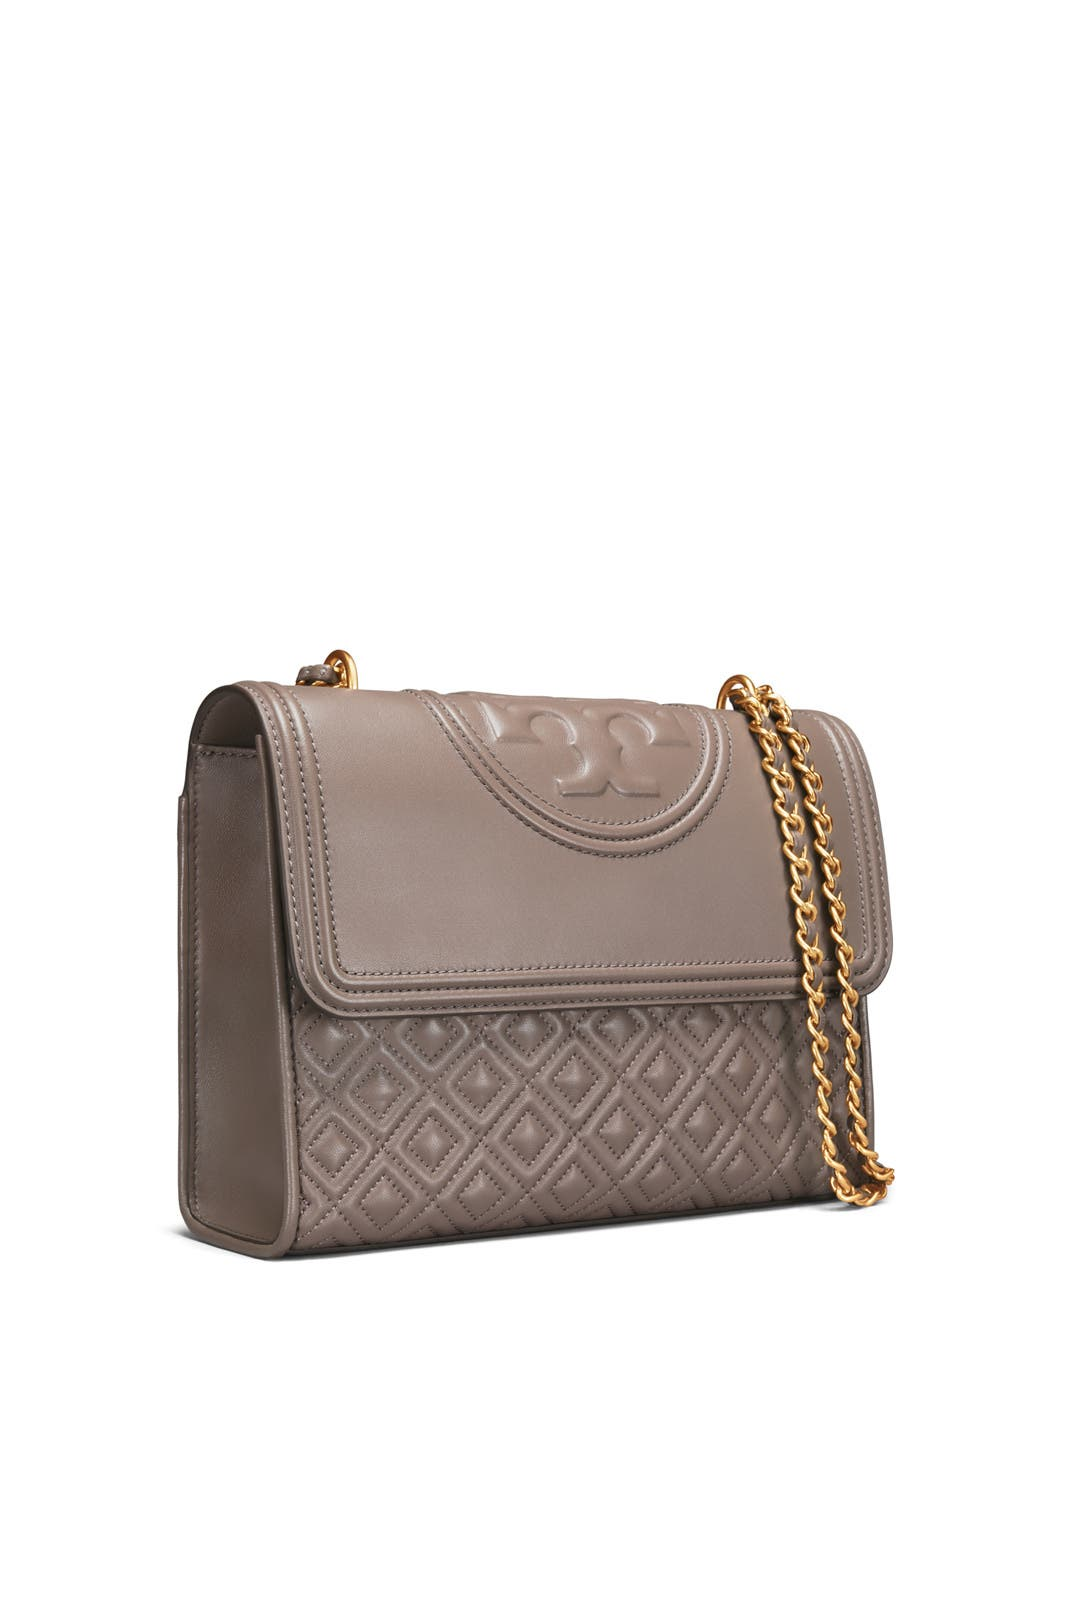 b46c0eb20ea2 Maple Fleming Small Convertible Bag by Tory Burch Accessories for  75